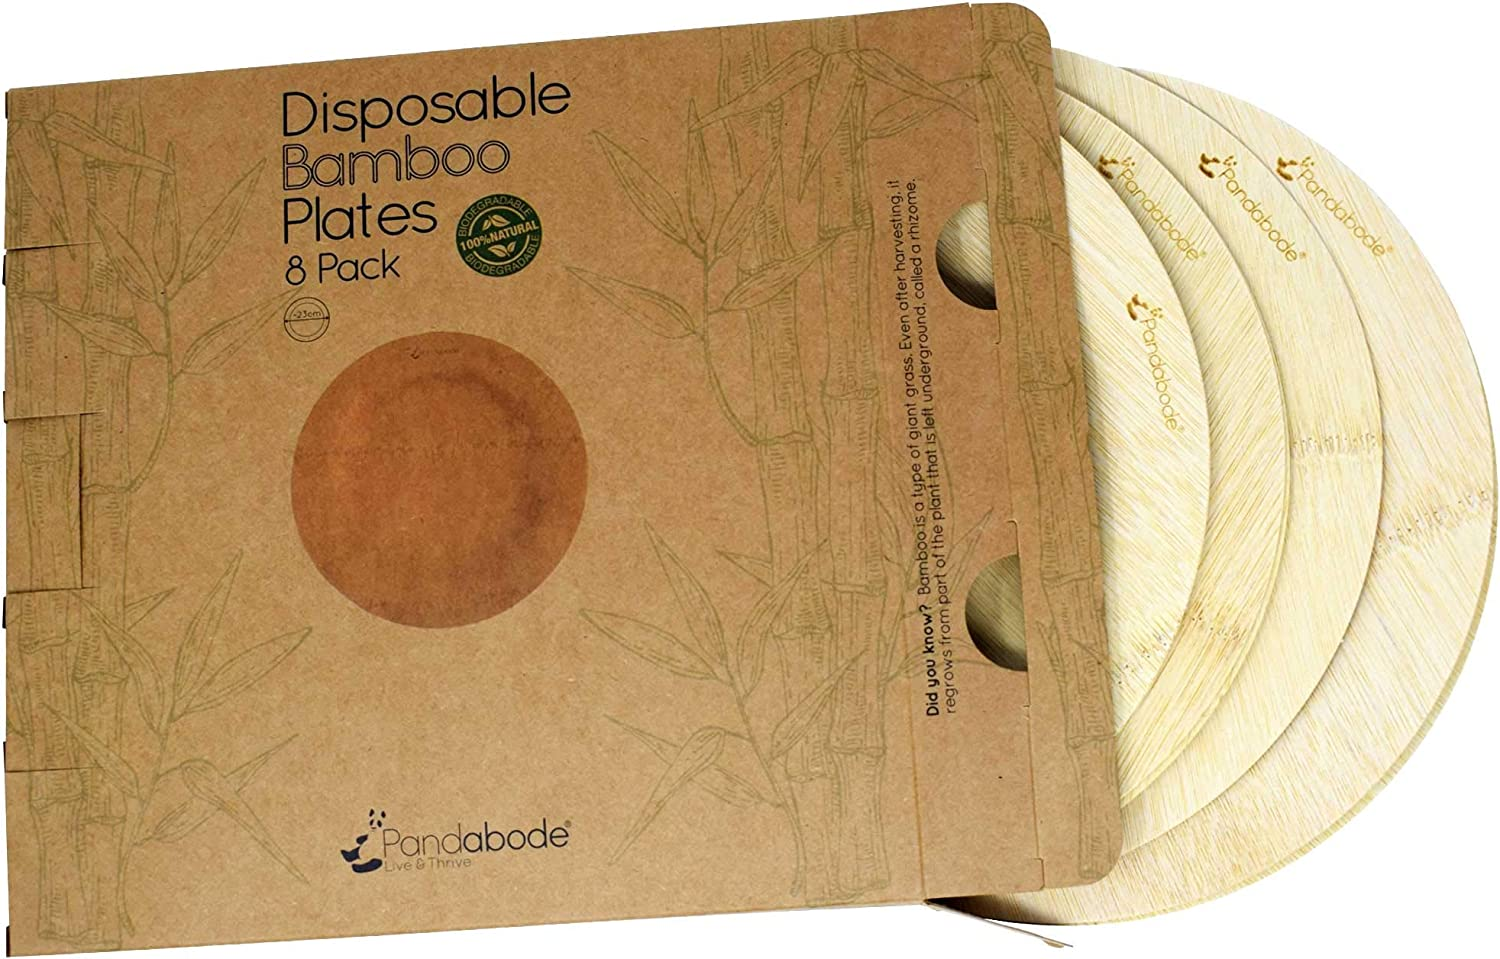 Biodegradable Eco Luxury for Parties 8 Disposable Bamboo Plates Set by Pandabode/™ Wedding Picnic and Camping BBQ Premium High Quality Strong /& Rigid